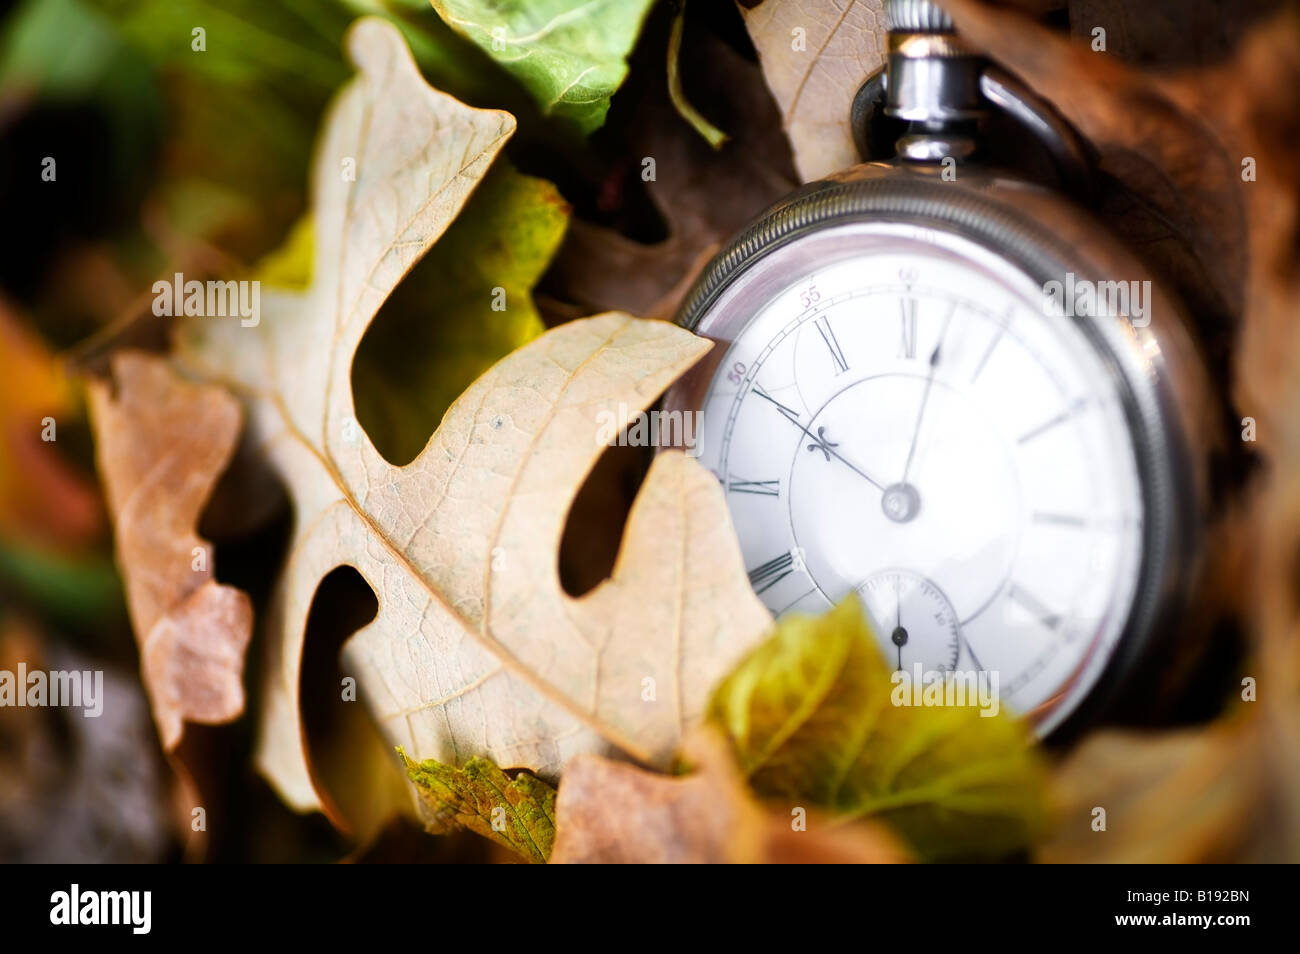 Time passing - Stock Image